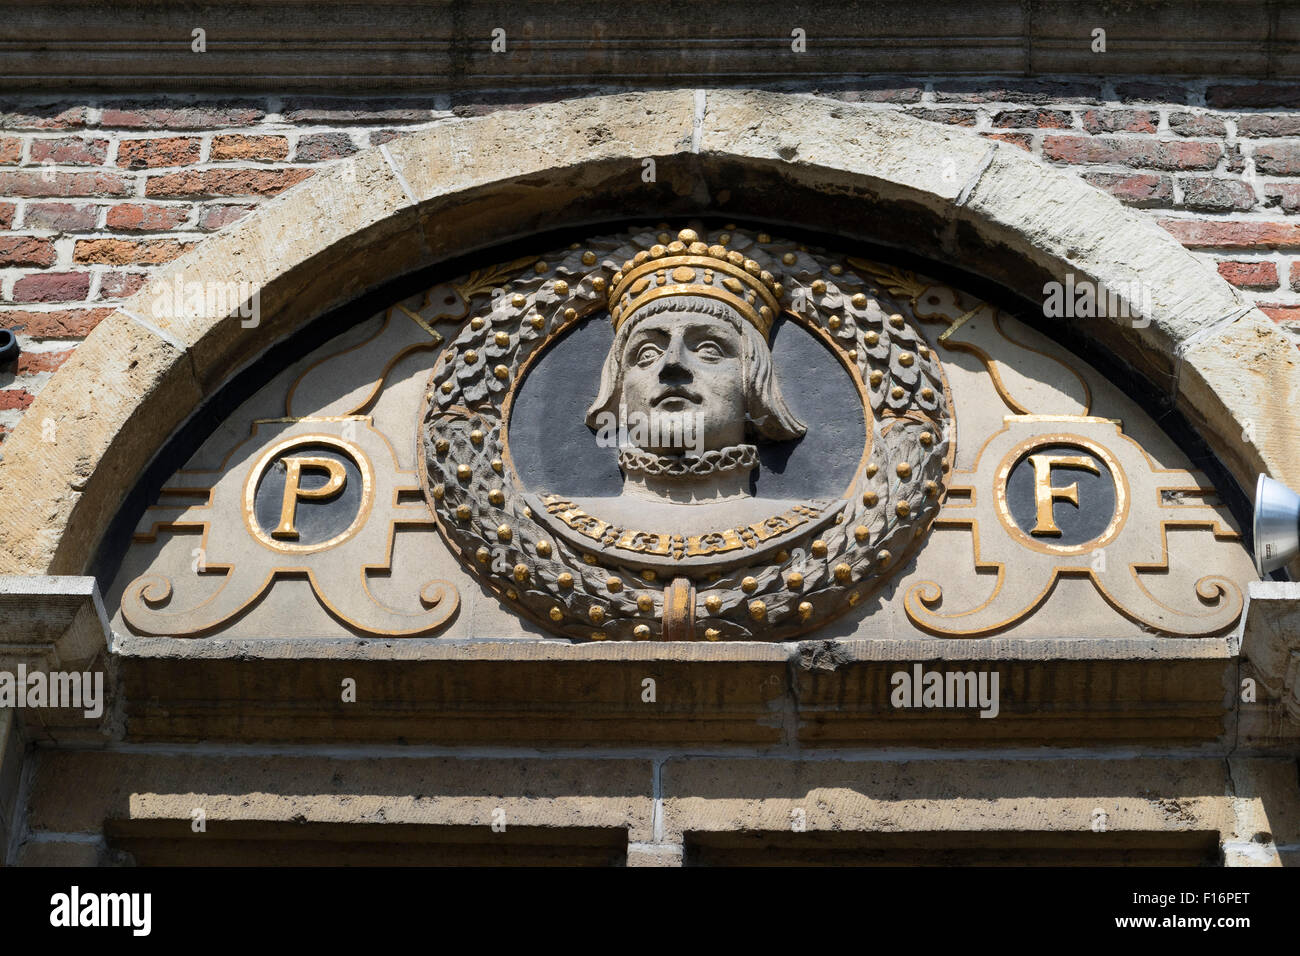 One of the crowned heads of a facade in Ghend, Belgium - Stock Image